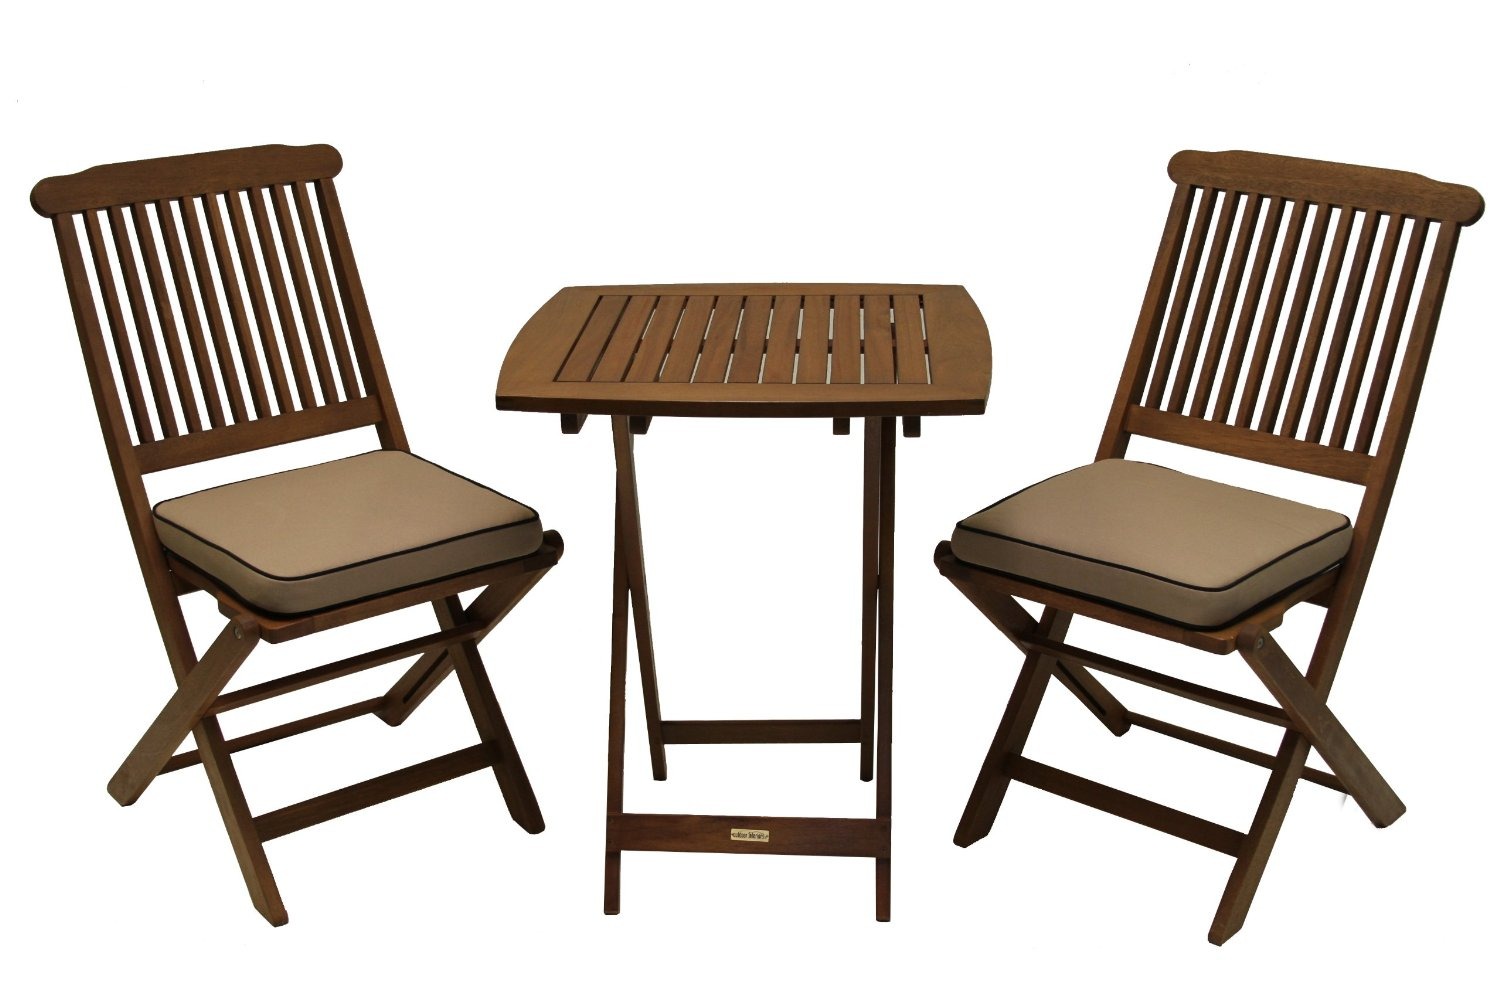 Patio furniture images july 2014 for Outdoor patio table and chairs